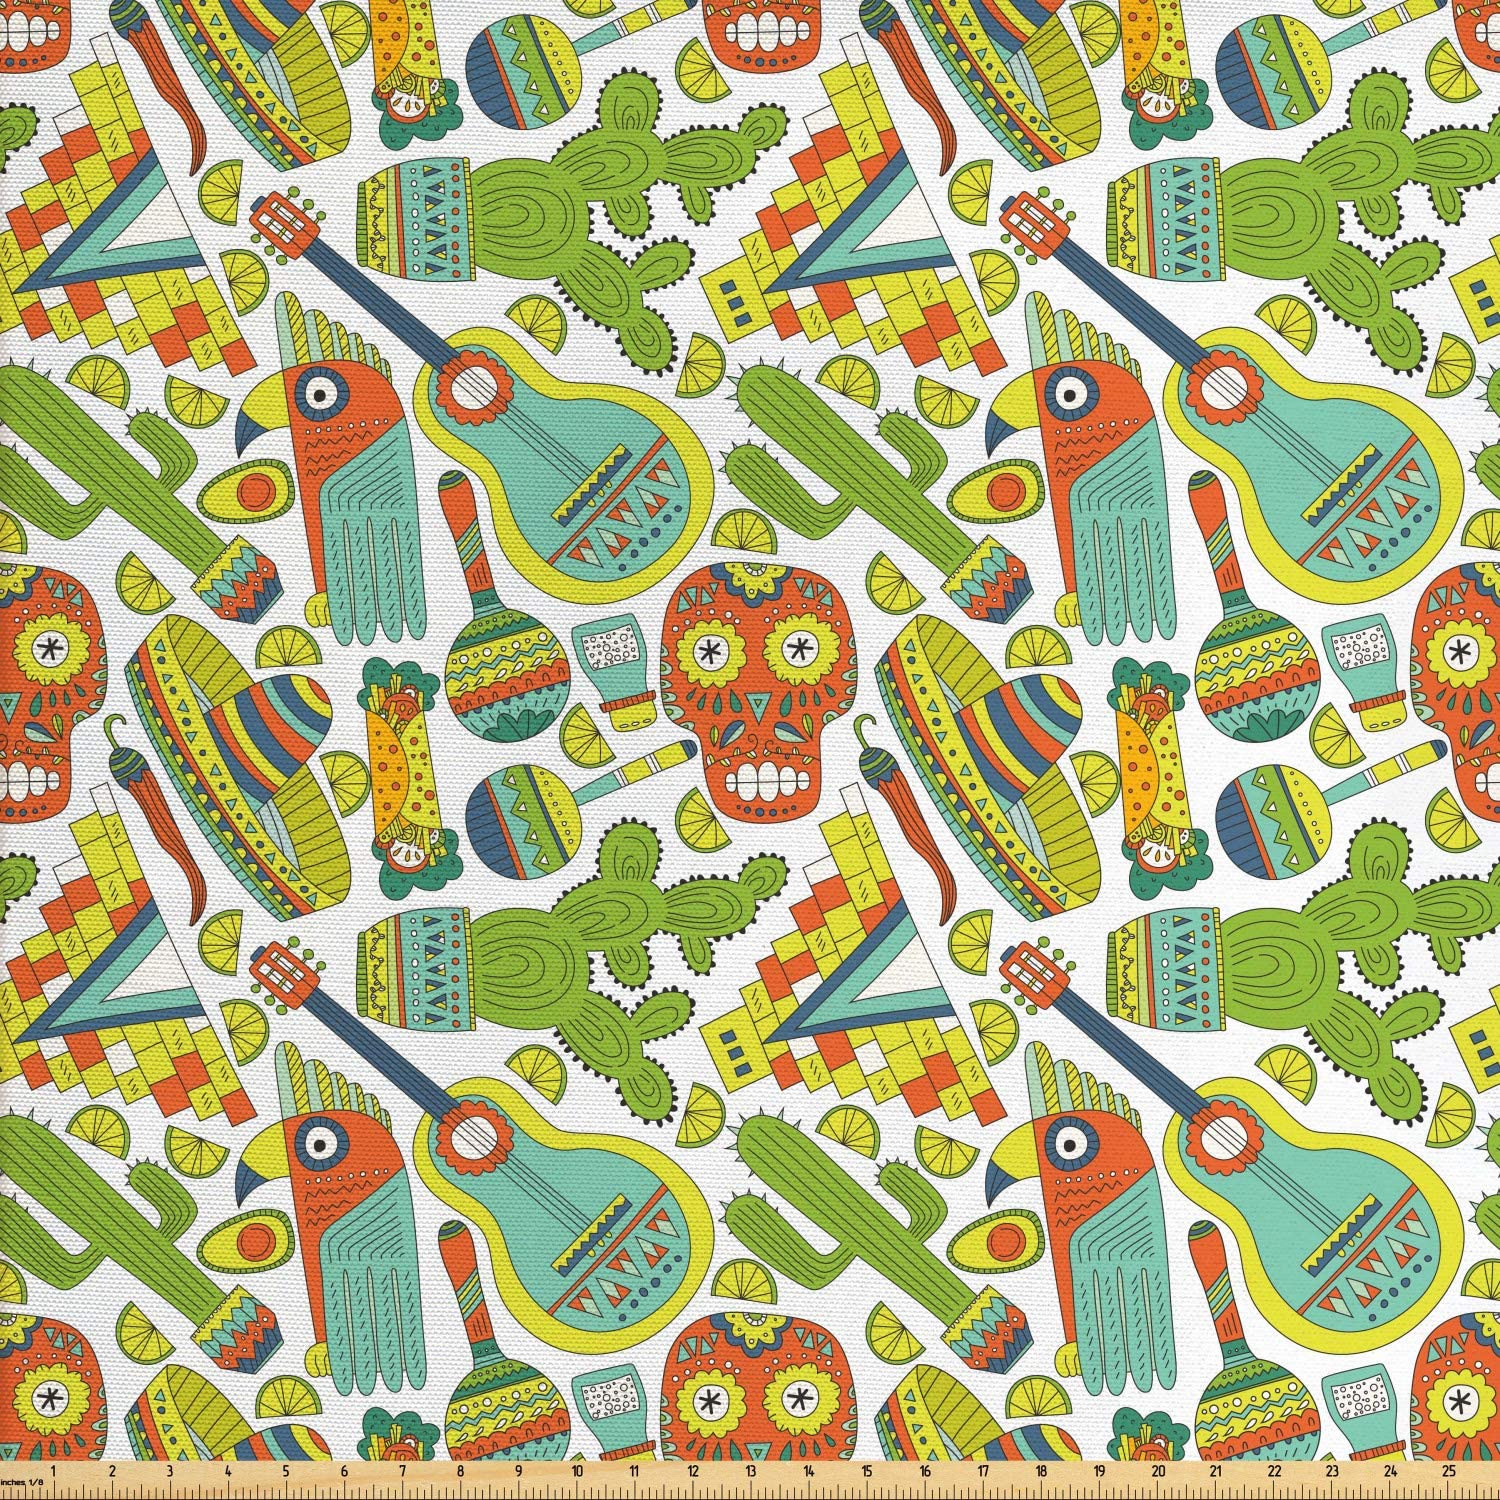 Ambesonne Mexican Fabric by The Yard, Traditional Elements Cartoon Maracas Taco Sombrero, Decorative Fabric for Upholstery and Home Accents, 1 Yard, Green Orange